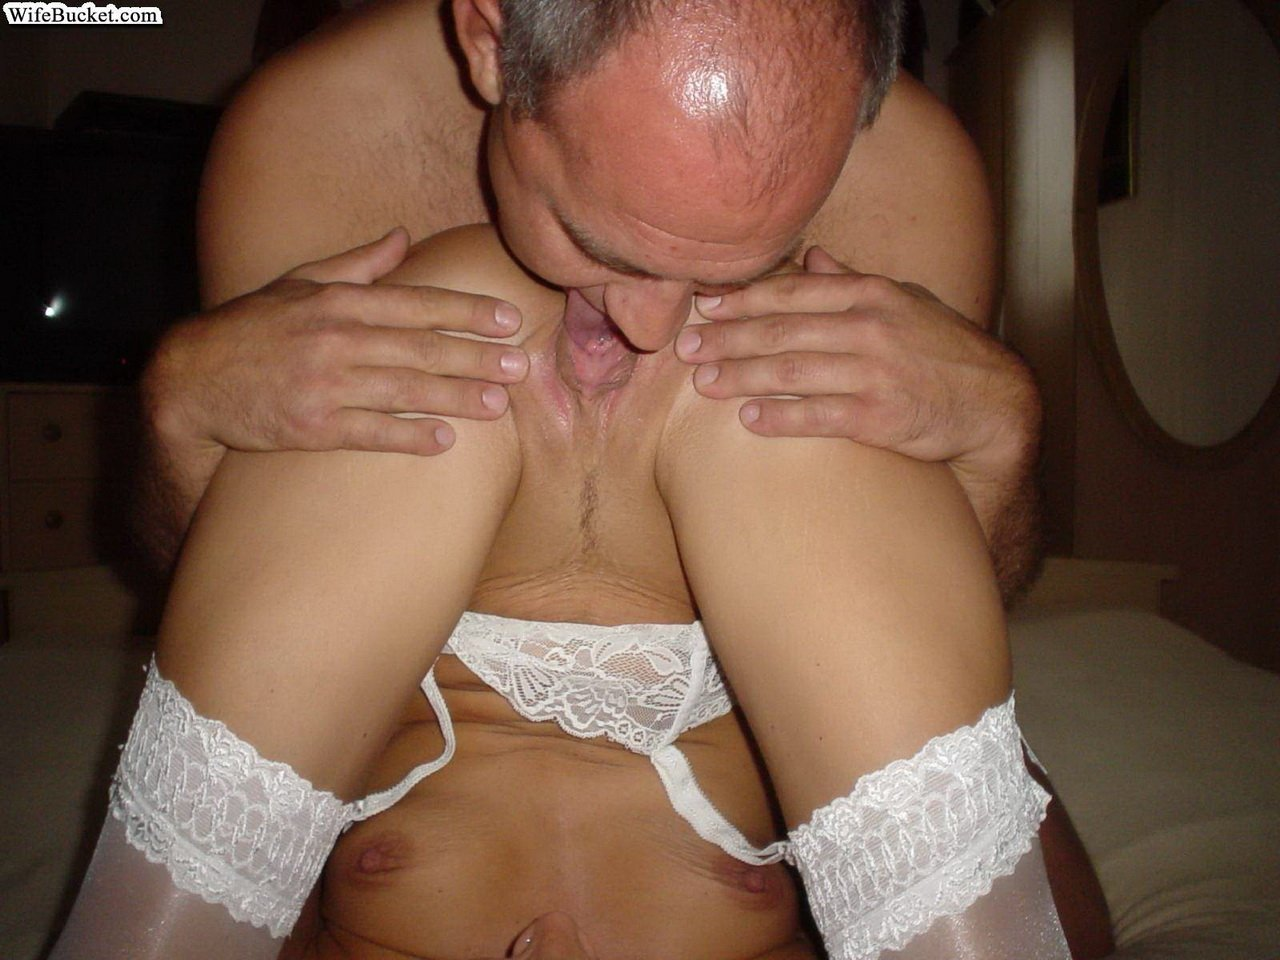 hot blowjob pictures